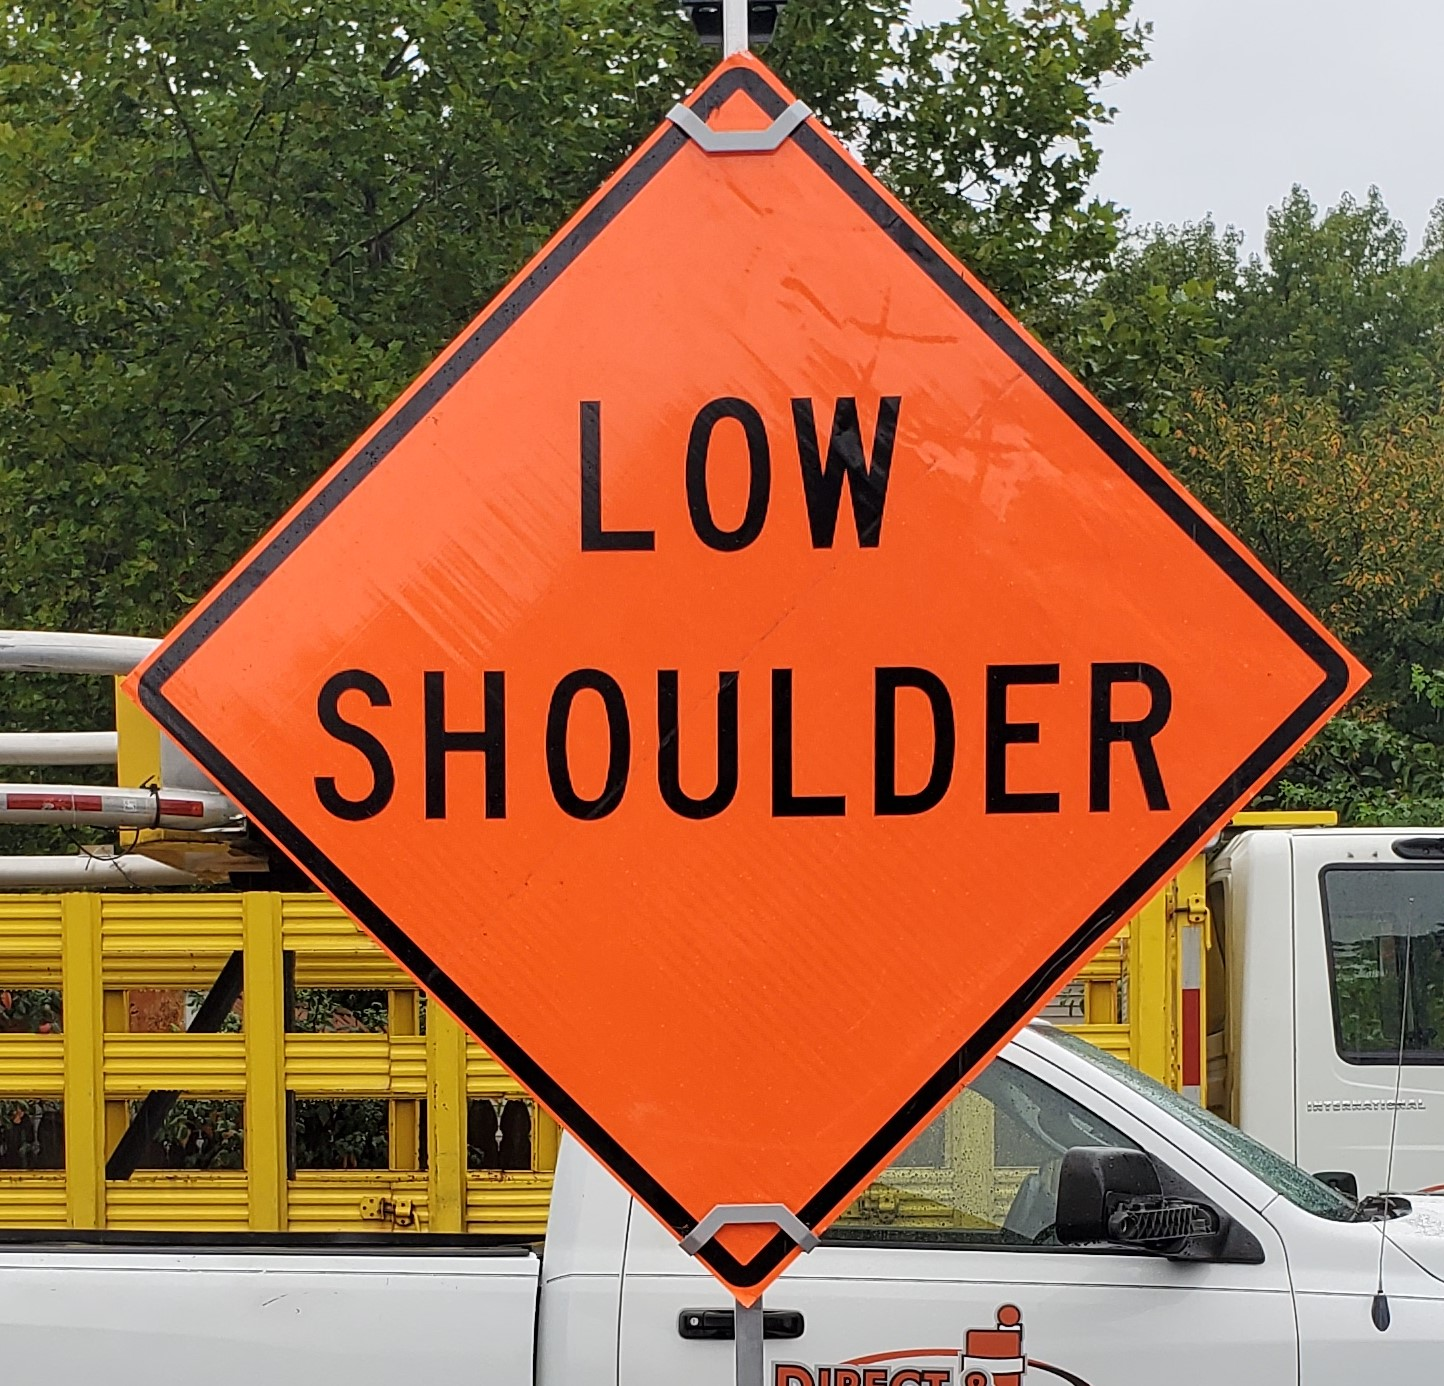 Low Shoulder